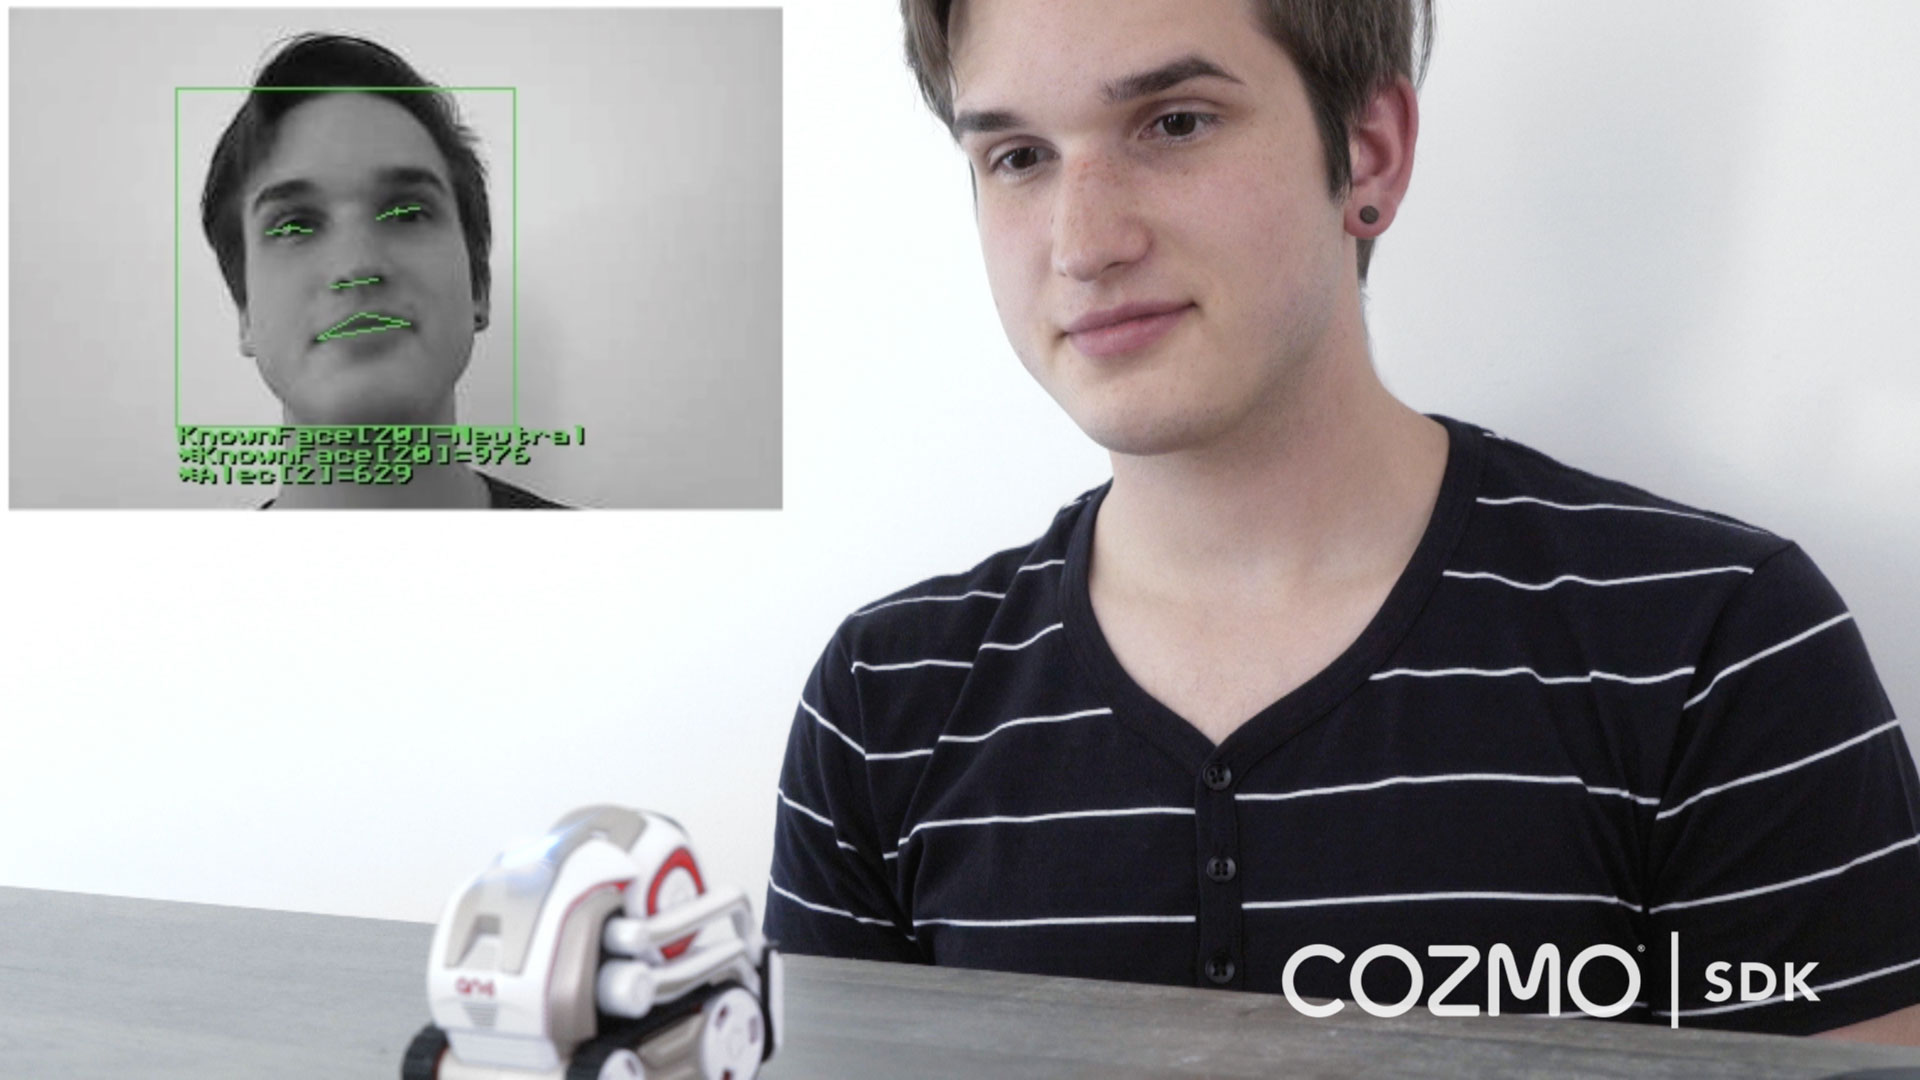 Unique_Cozmo_Facetracking-2